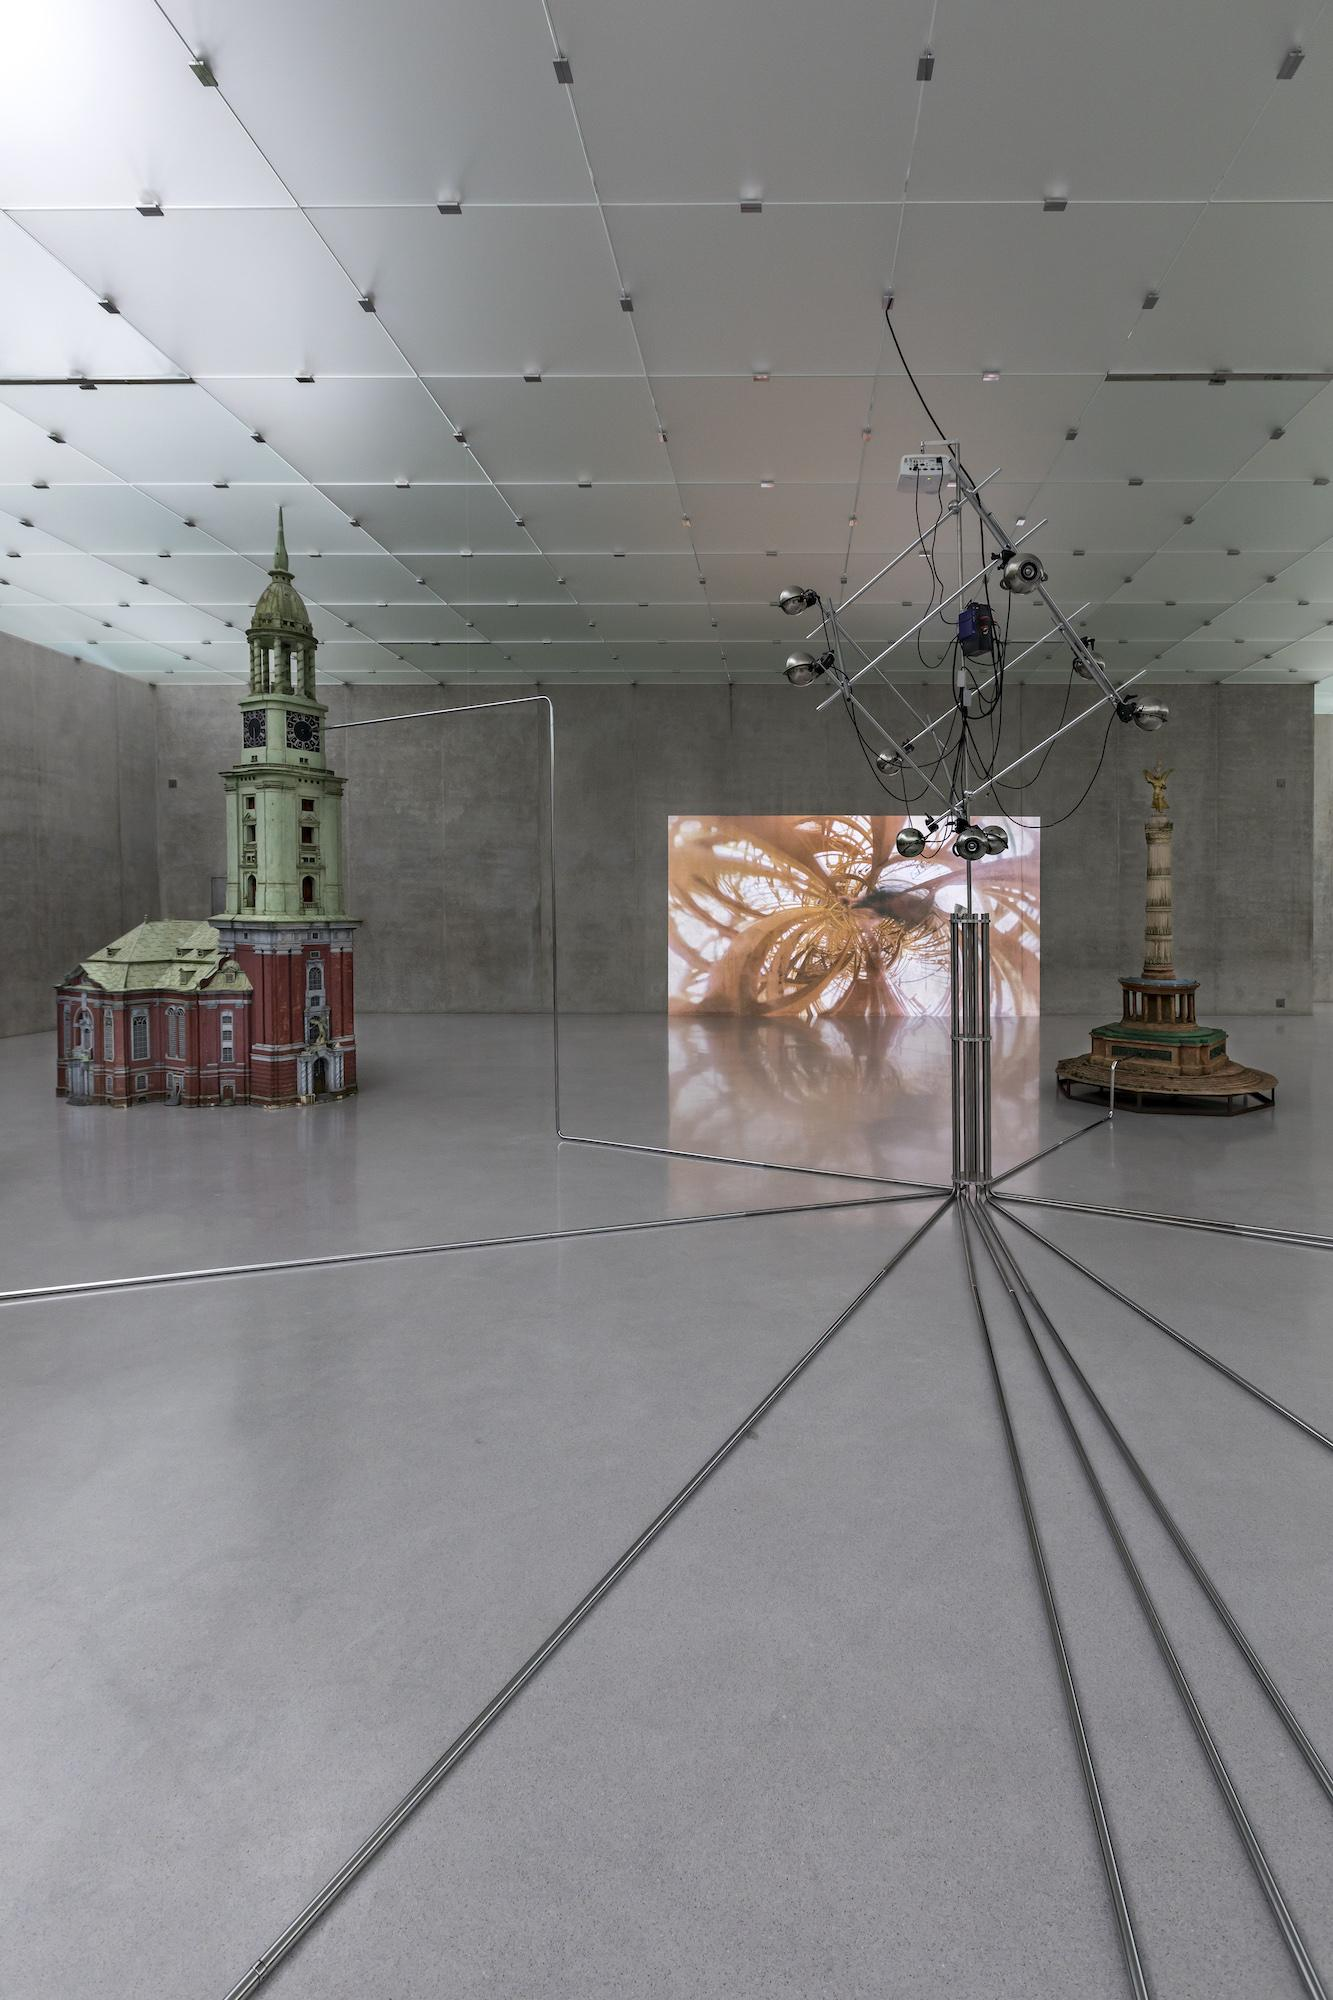 /Rollo/, 2019 Installation view, third floor, Kunsthaus Bregenz, 2019 Photo: Markus Tretter, Courtesy of the artist, © Raphaela Vogel, Kunsthaus  Bregenz